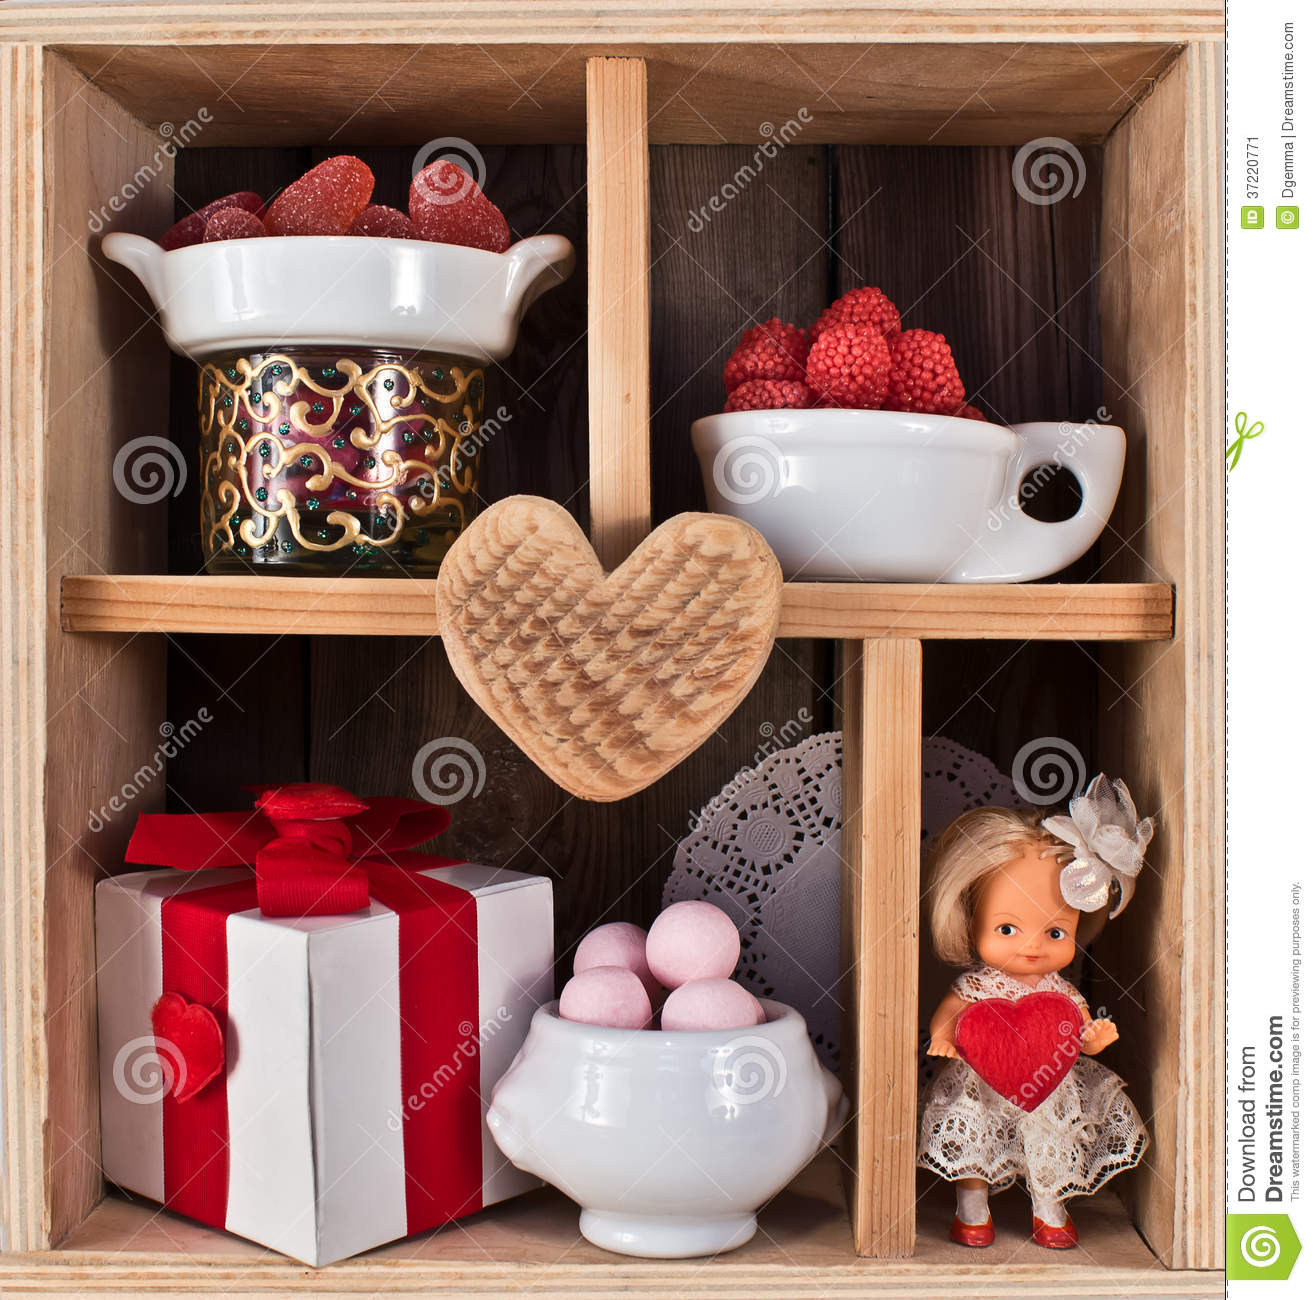 Valentine Decorated Boxes: Wooden Shelf Decorated For Valentine Stock Image